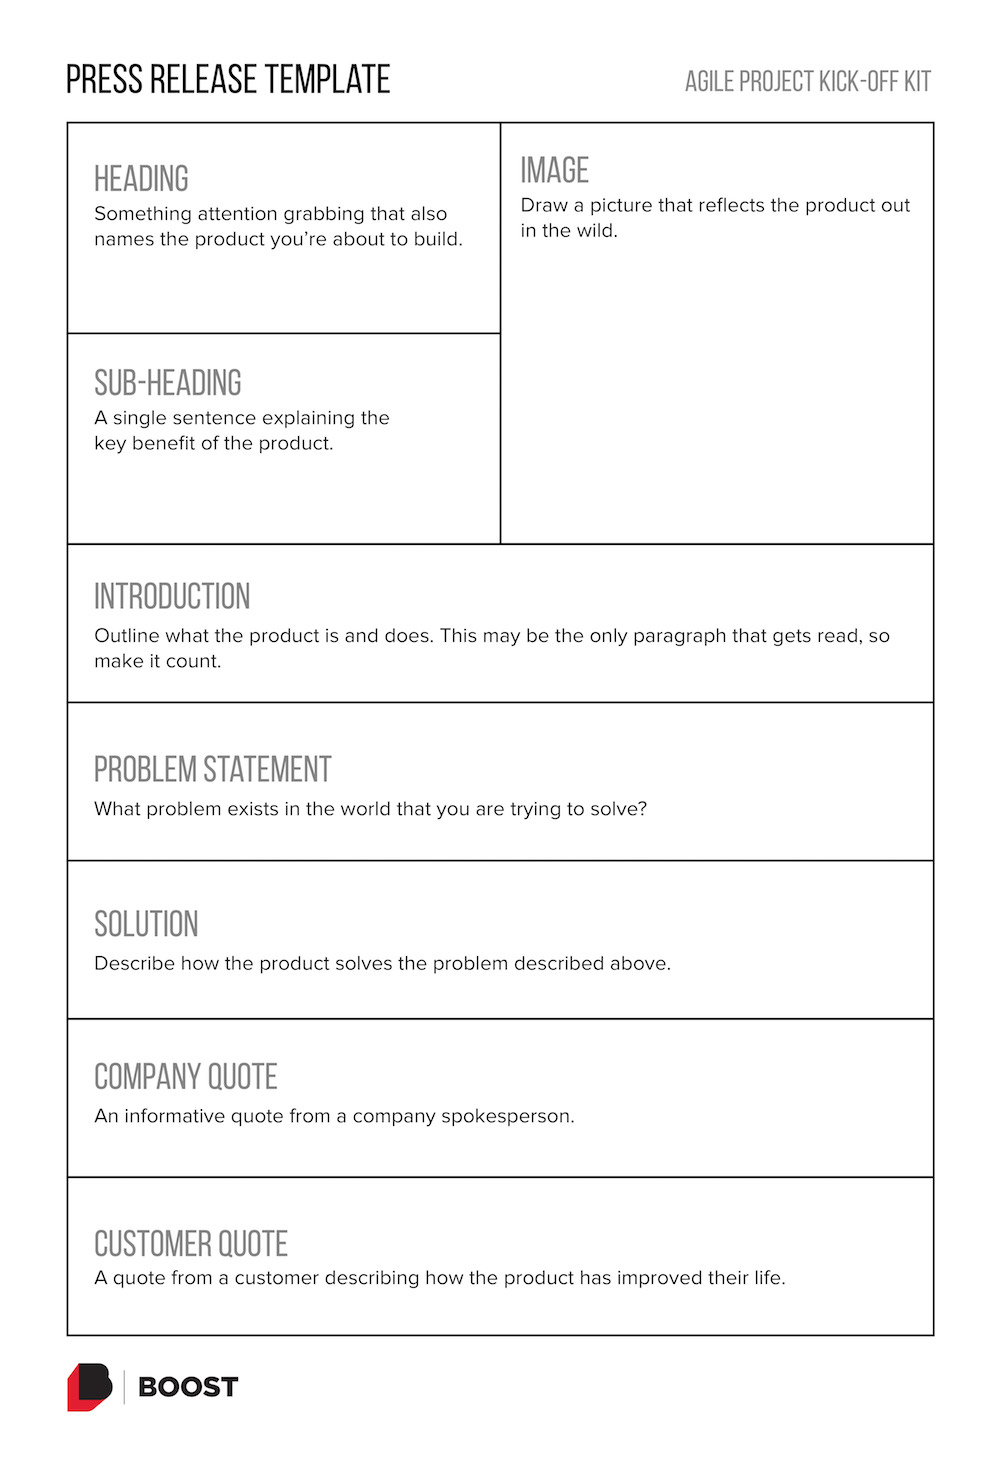 Press Release template. Click to get a PDF of the template.